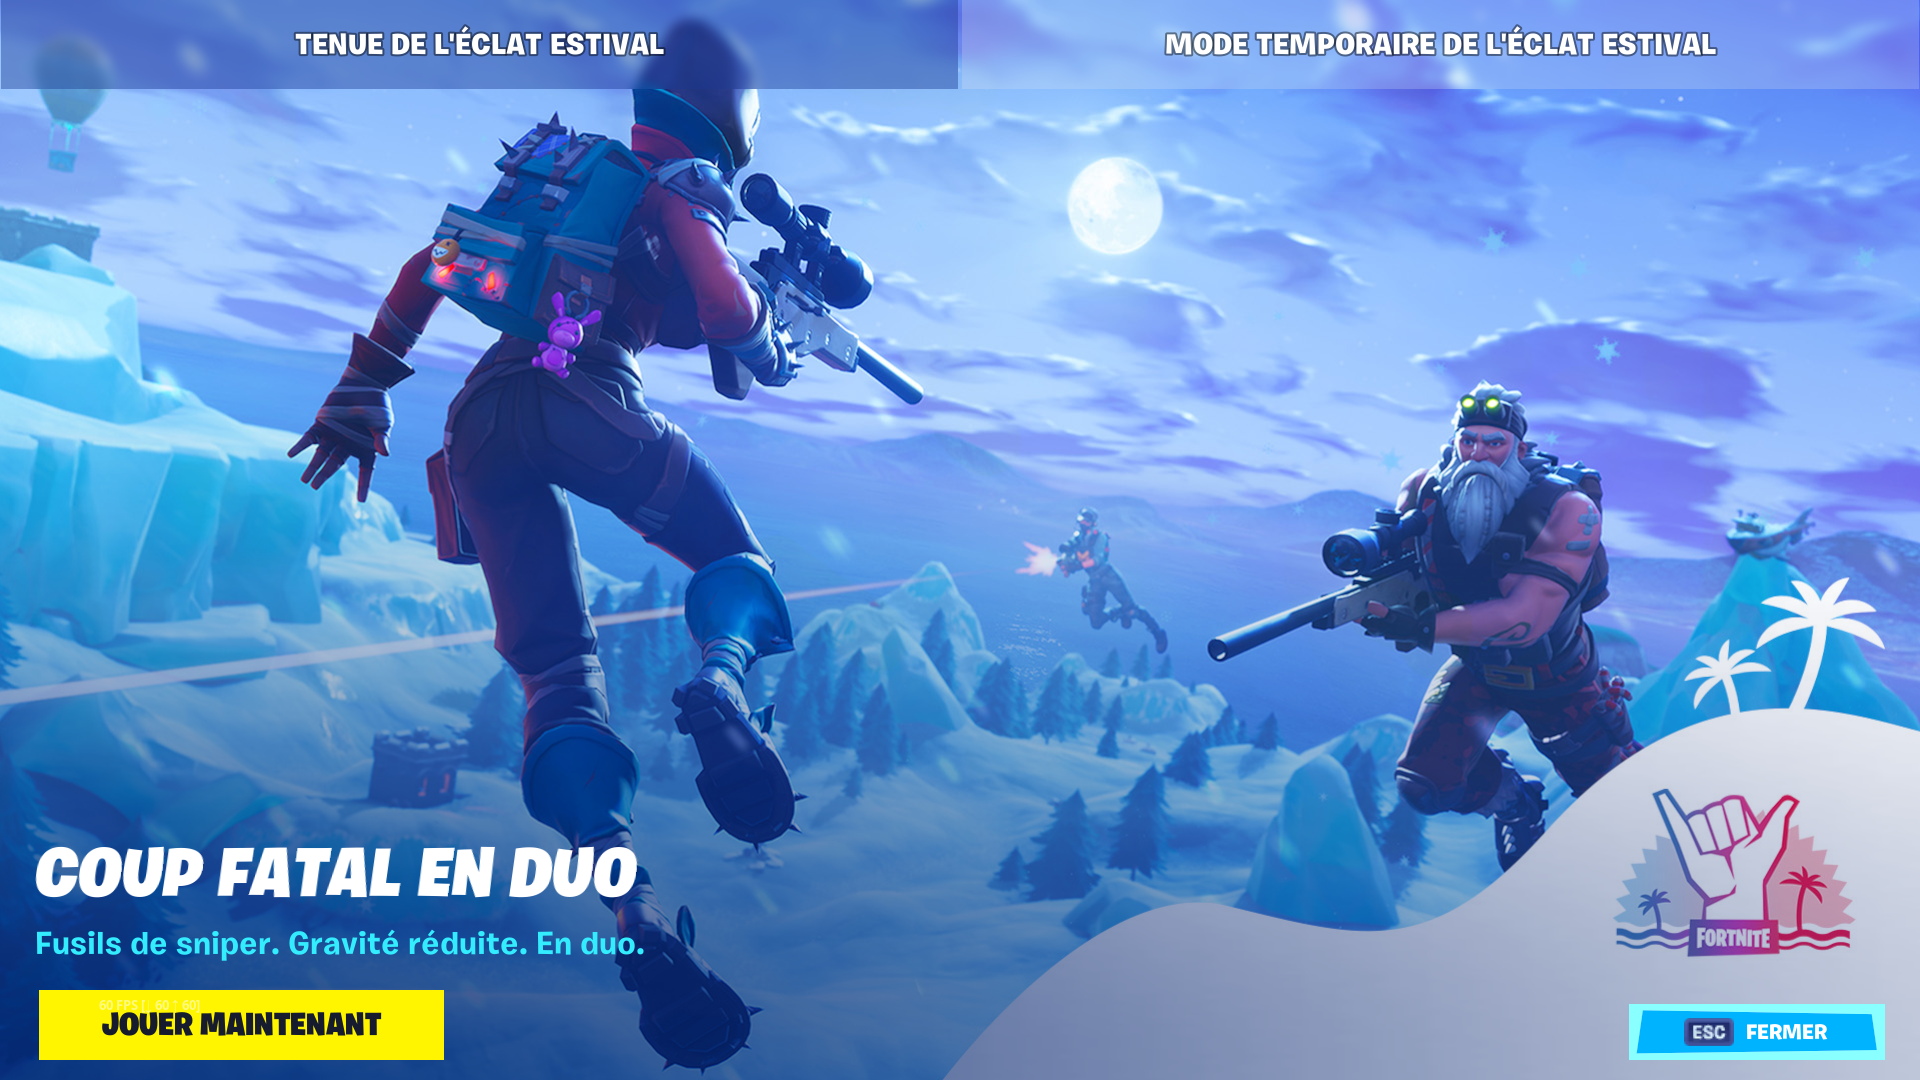 coup-fatal-duo-fortnite-mode-temporaire